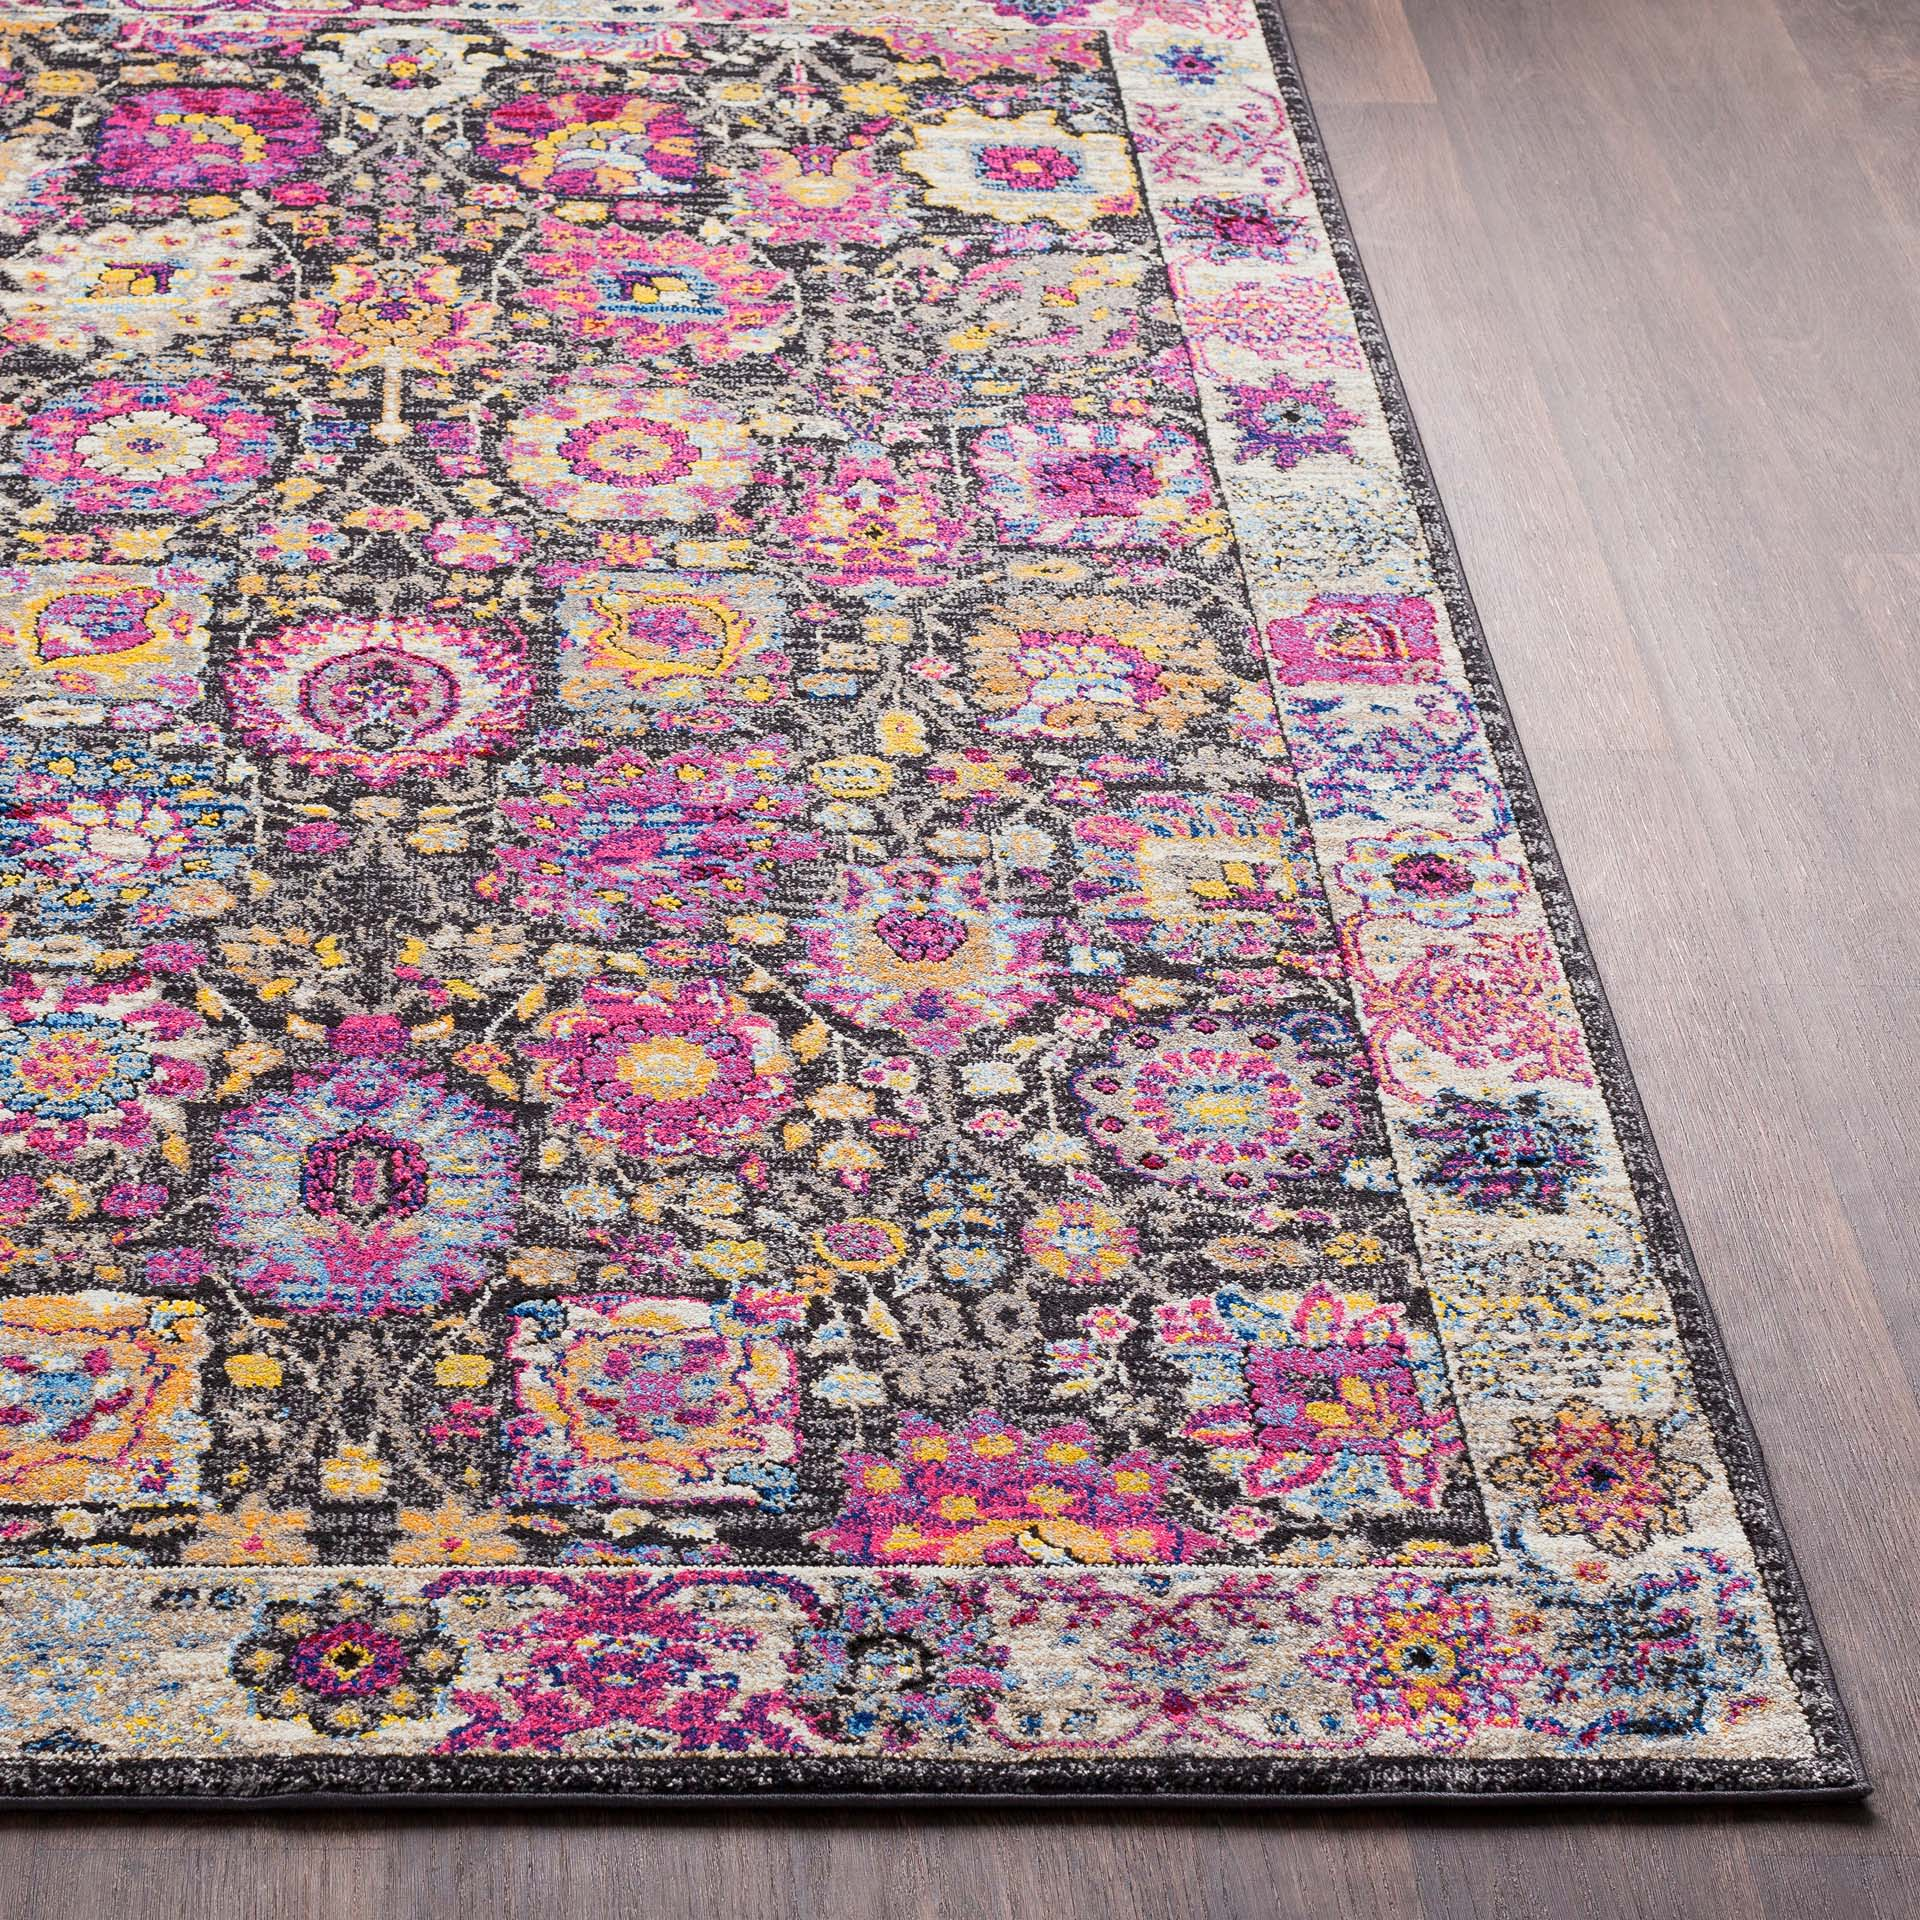 Funky and colorful modern 5' x 7' area rug with bright pink, yellow, blue, violet and lime shapes on wood floor - Side View